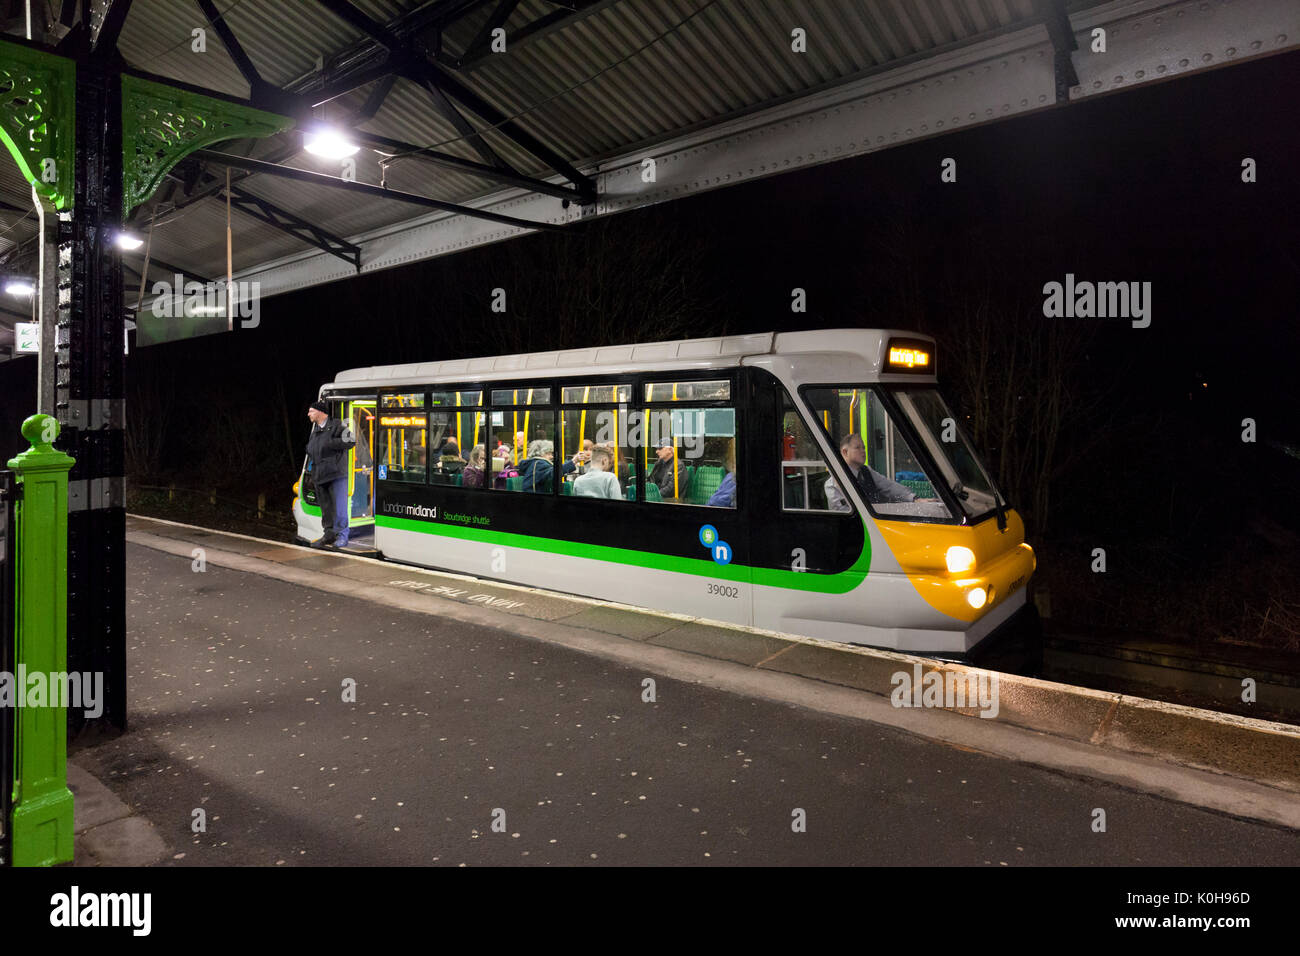 The 1855 Stourbridge Jn - Stourbridge town waits to depart from Stourbridge junction, formed of a PPM 60 Parry people mover railcar - Stock Image